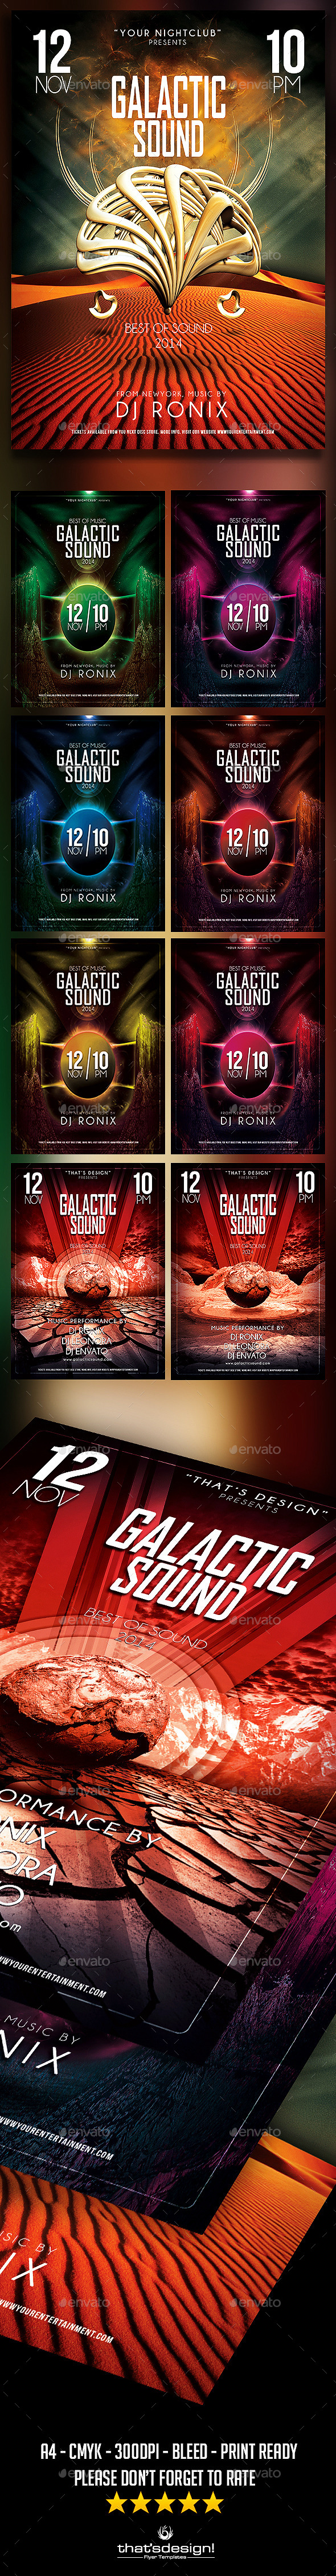 Galactic Sound Flyer Bundle - Clubs & Parties Events